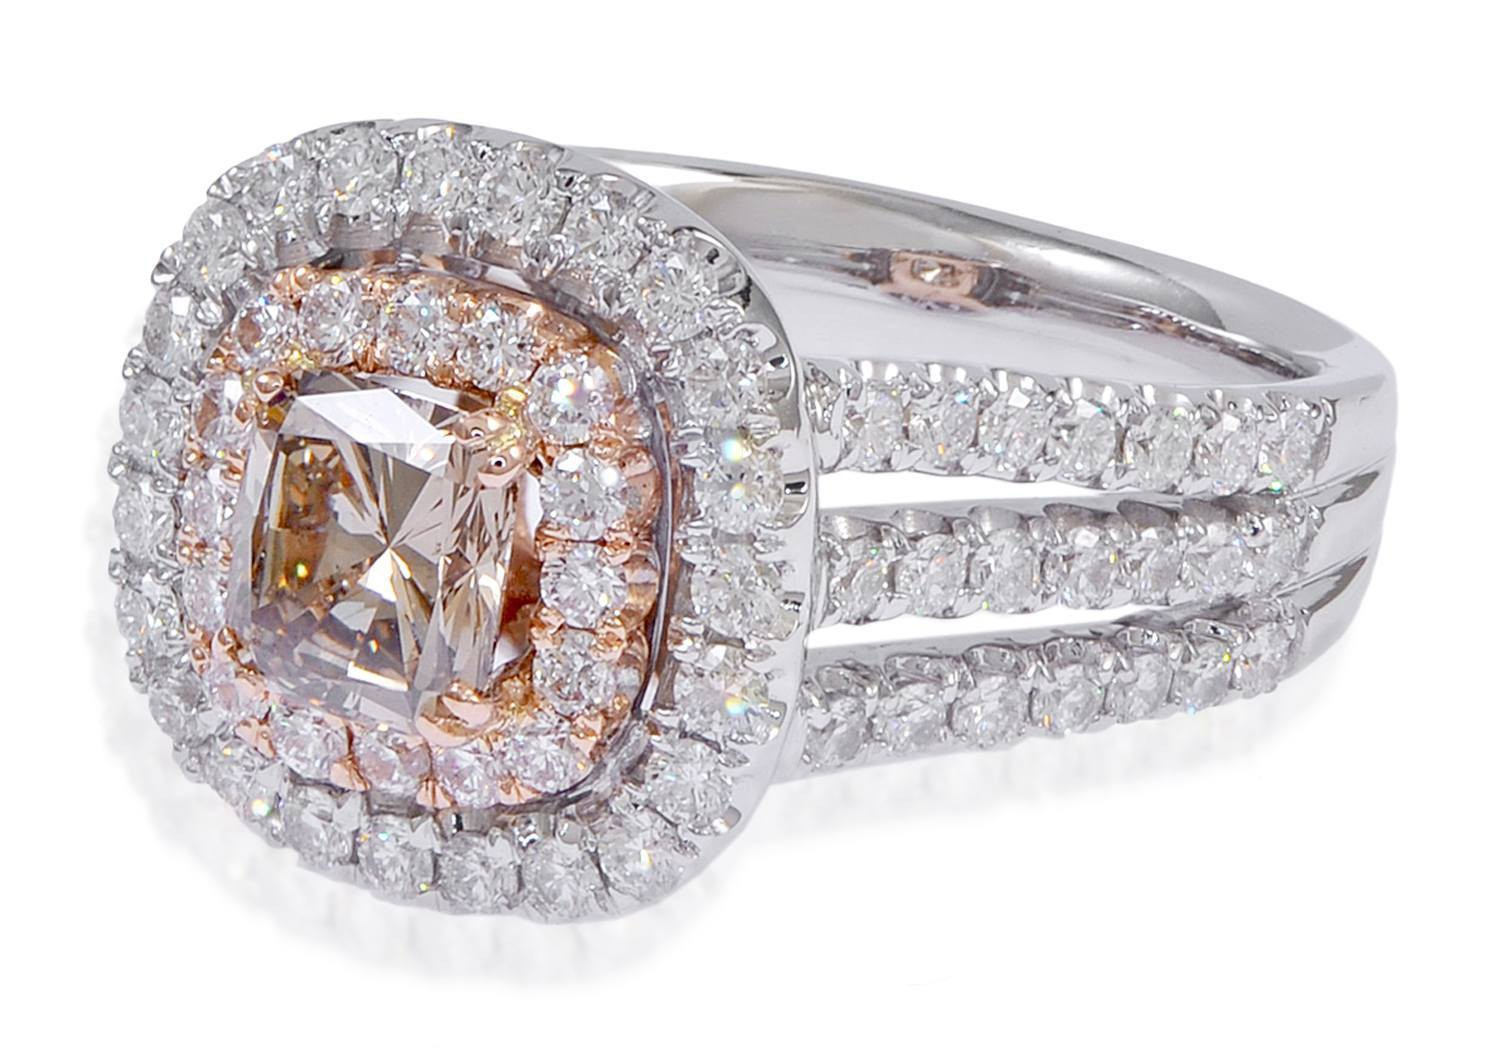 Amazing Cushion Cut Diamond Engagement Rings UK: cute-cut-diamond-engagement-rings-gold-square-top-and-many-crystal-for-make-glamour-rings-view